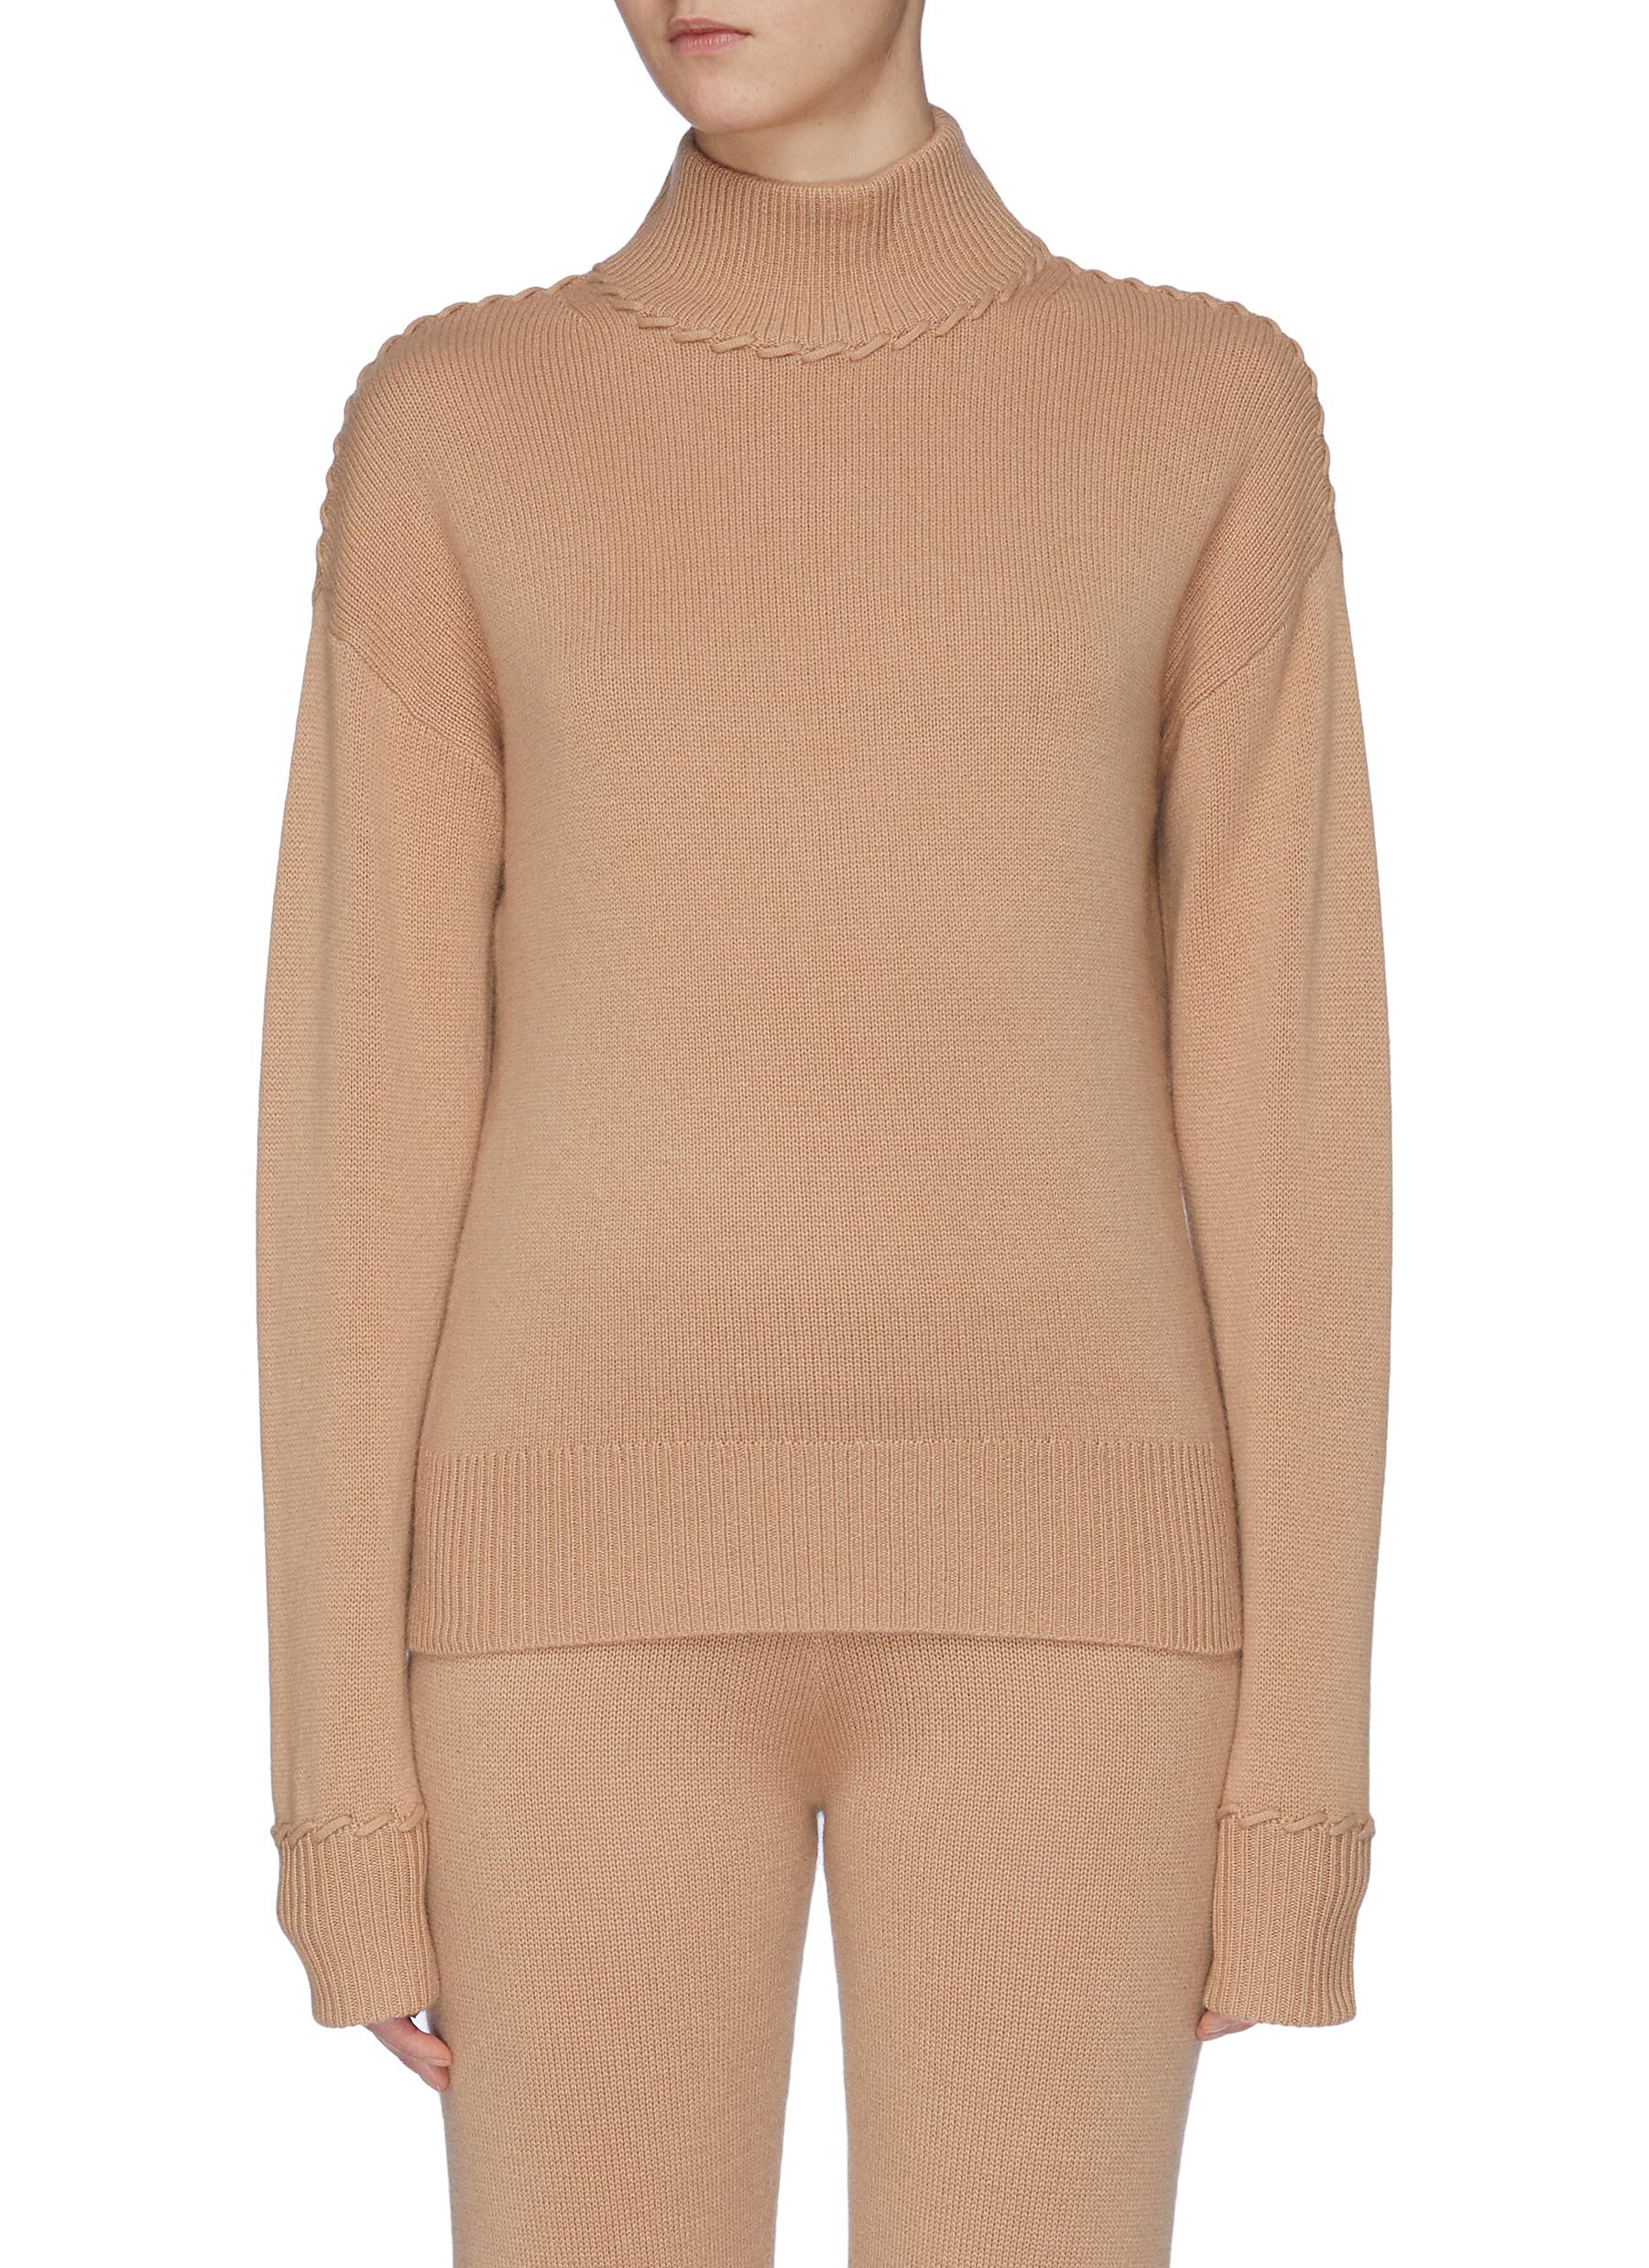 Whipstitch contrast cashmere turtleneck sweater by Theory